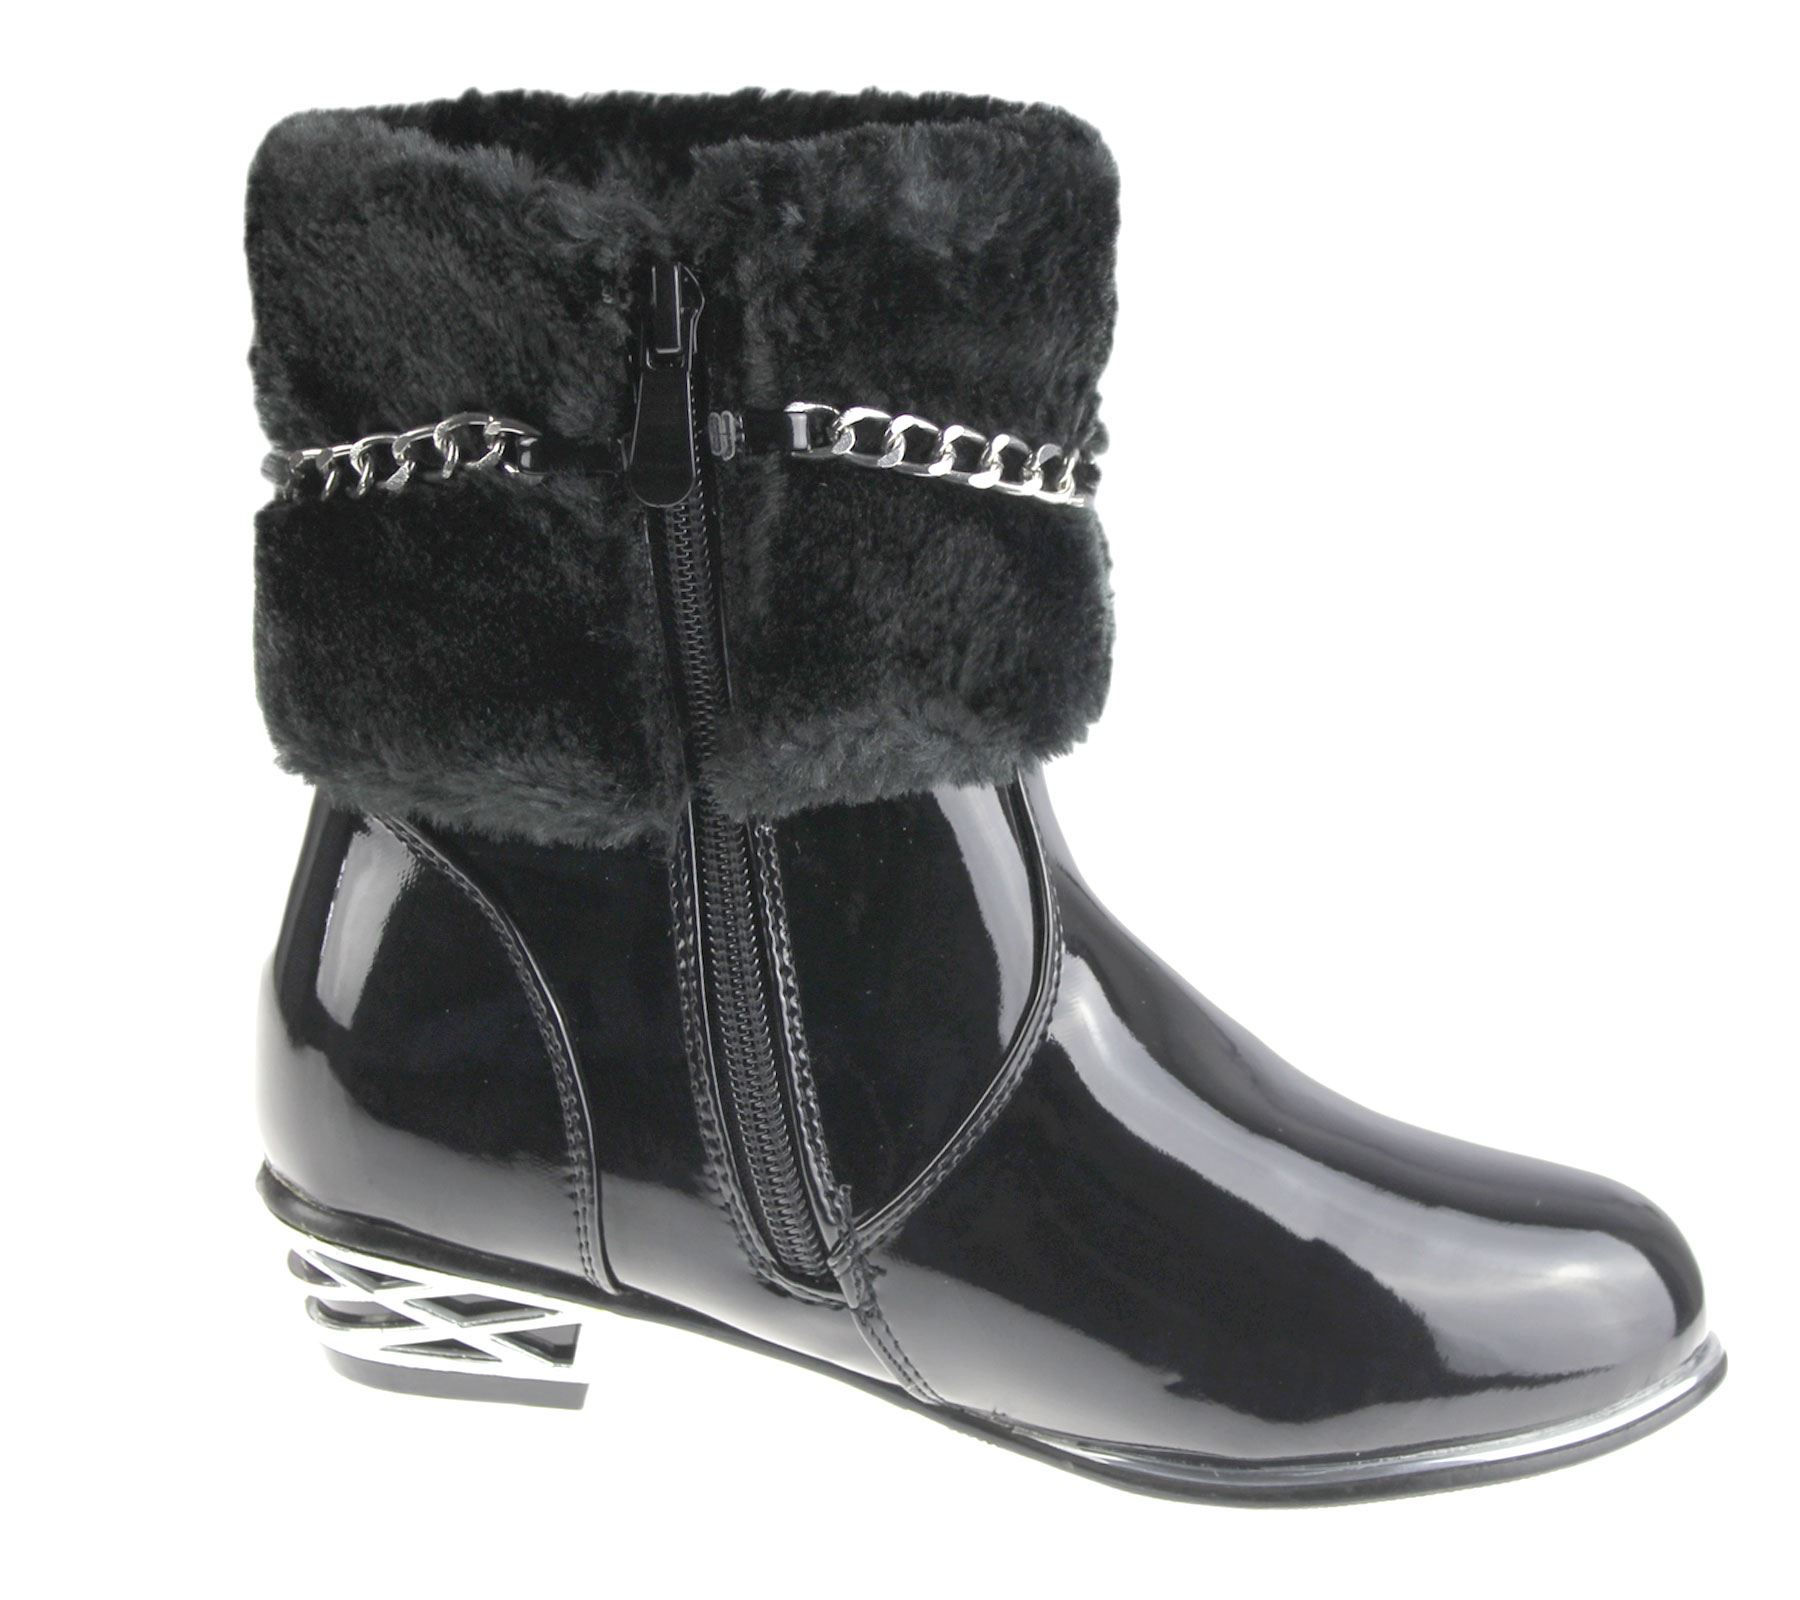 Girls Fur Lined Boots Kids Winter Warm Fancy Party High Top Patent ...